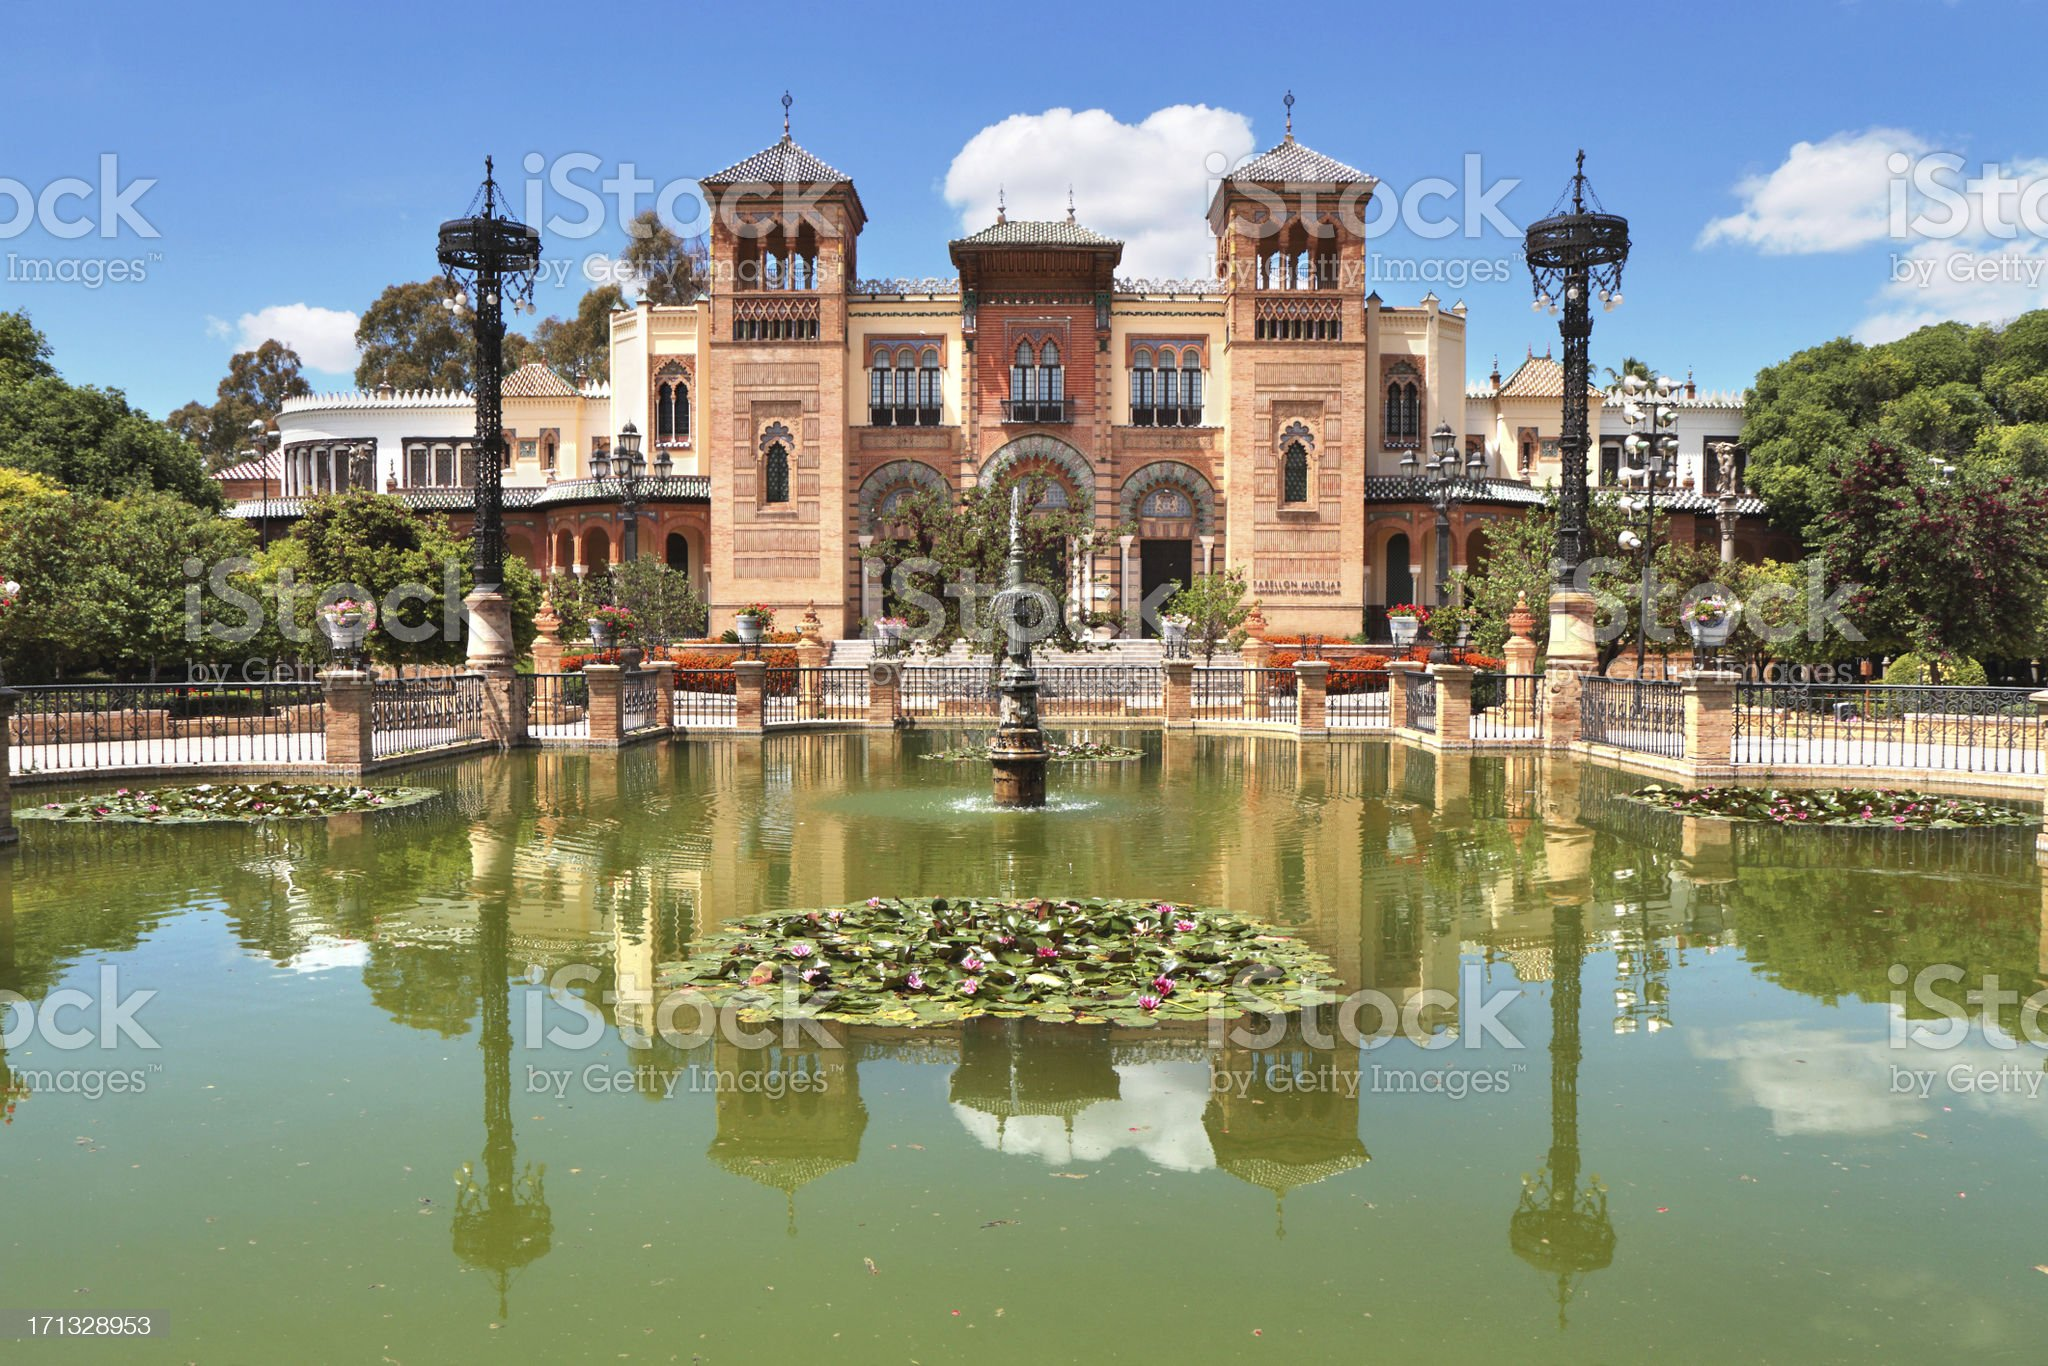 Pabellón Mudéjar, Parque de María Luisa, Seville, Spain royalty-free stock photo